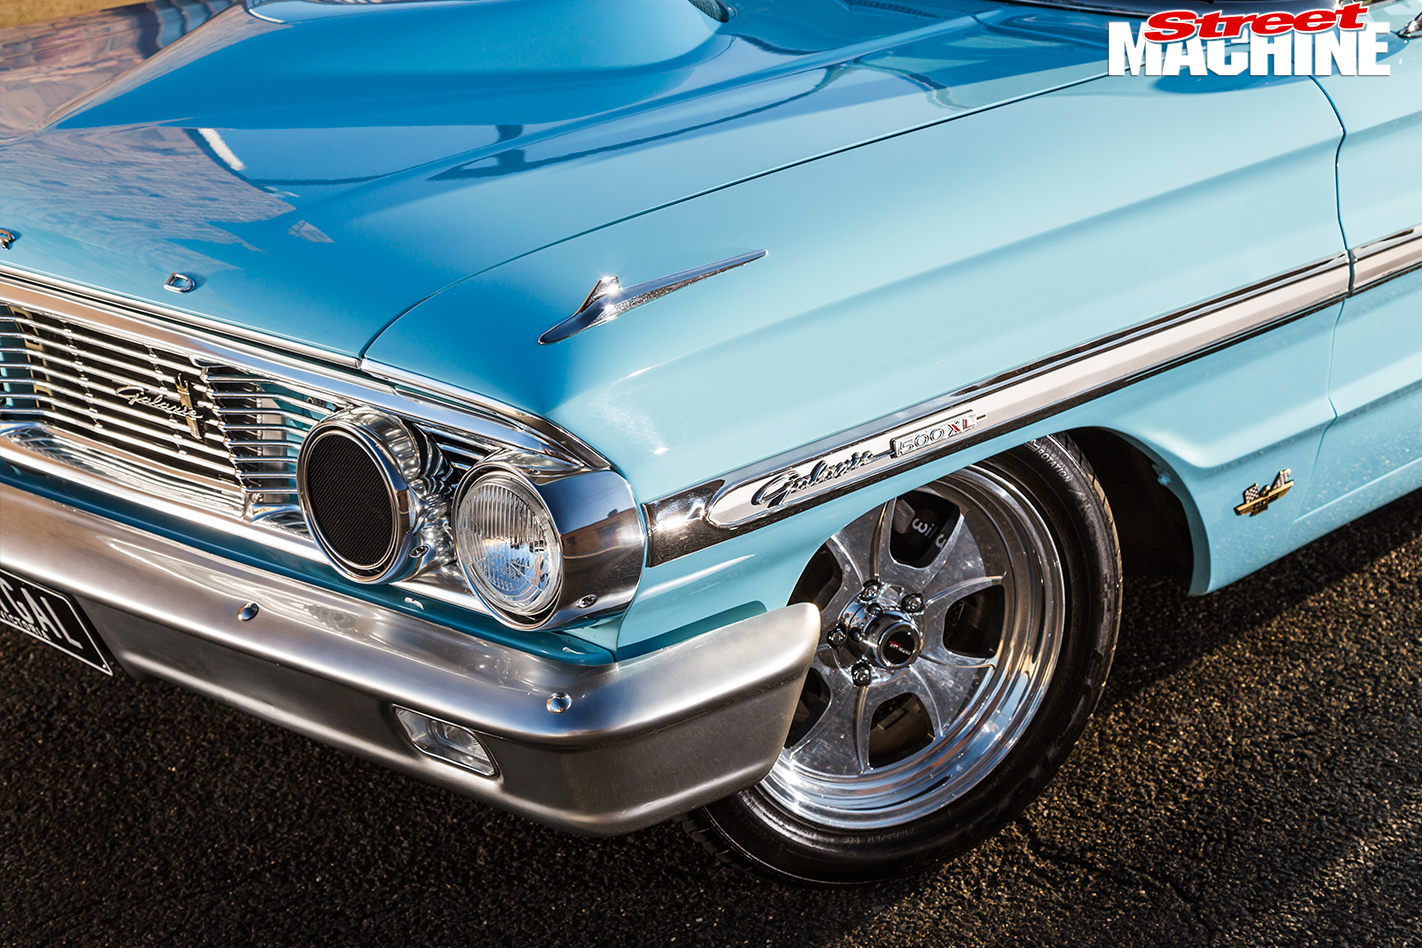 1964-ford -galaxie -500xl -frong -angle -detail